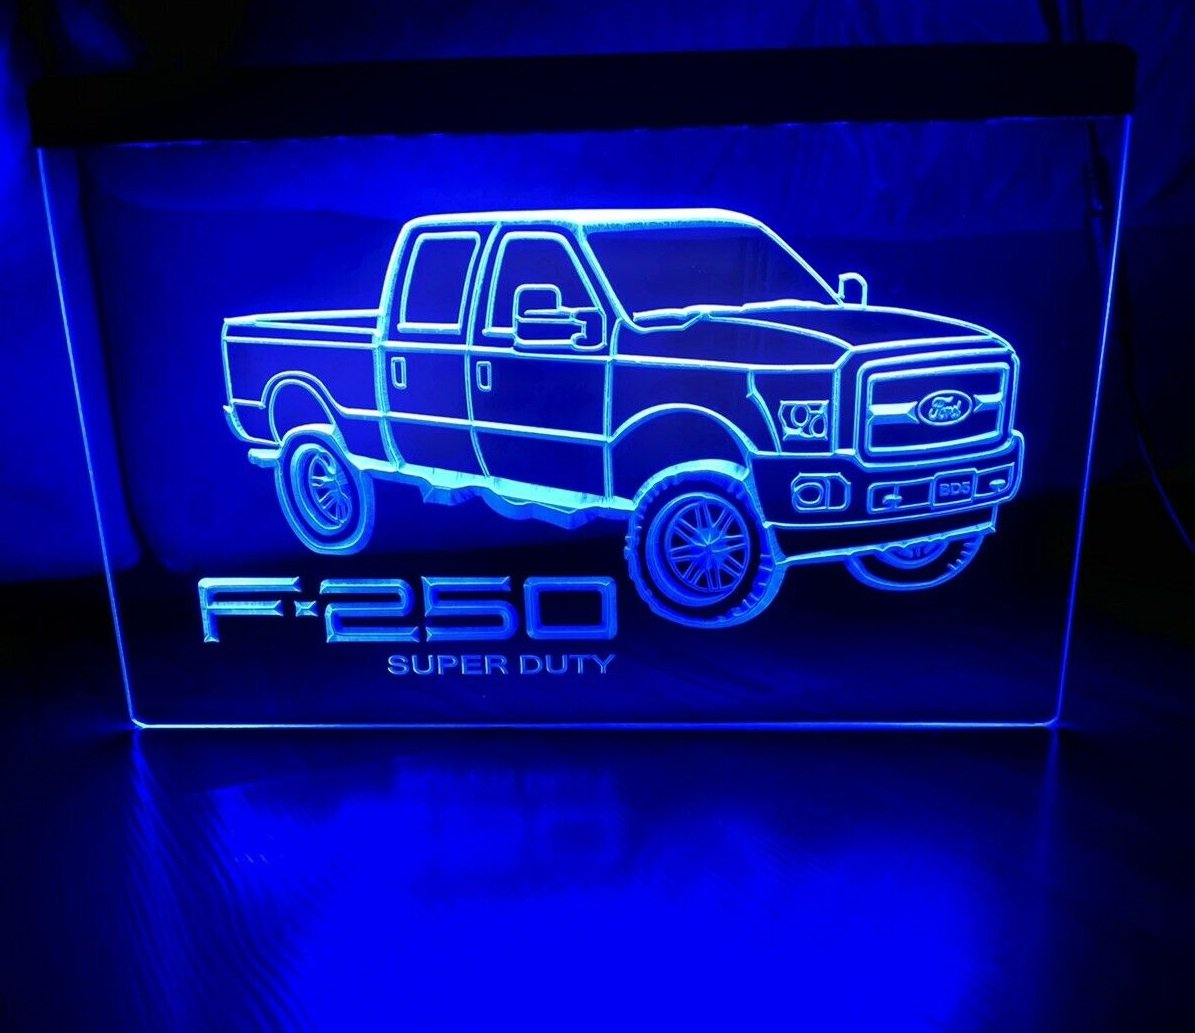 Ford F250 Super Duty Truck LED Neon Signs Home Decor Garage Man cave